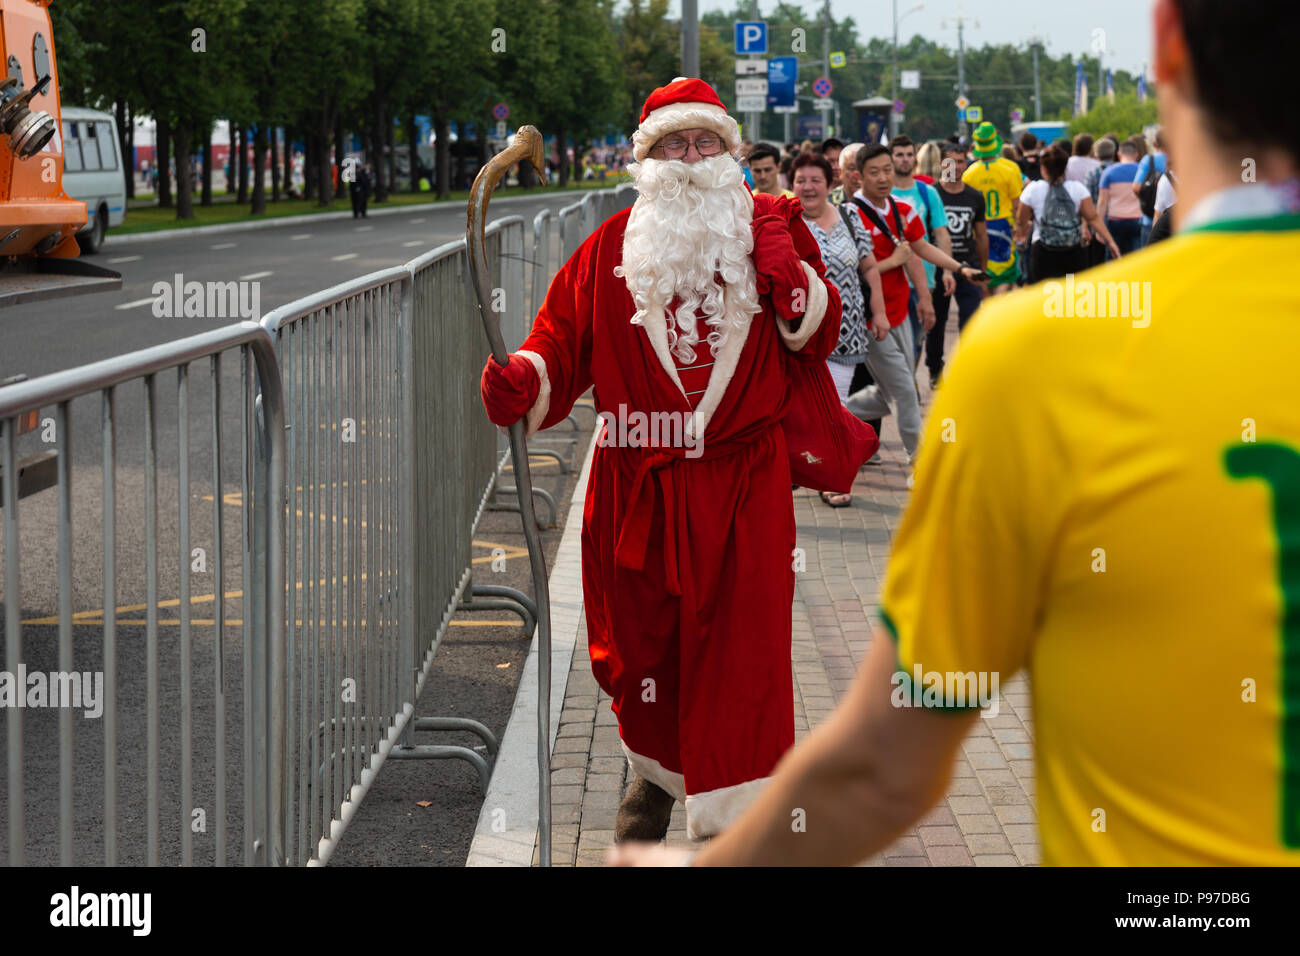 Moscow, Russia. 15th July, 2018. FIFA World Cup France-Croatia final. Fan festival area on Sparrow Hills by the Moscow State University. Area's capacity of 25000 people was exceeded manifold. There is barely room to move. Thunderstorm weather. Unexpected meeting. Santa Clause in the middle of the summer season. Is this the climate change effect? Credit: Alex's Pictures/Alamy Live News Stock Photo